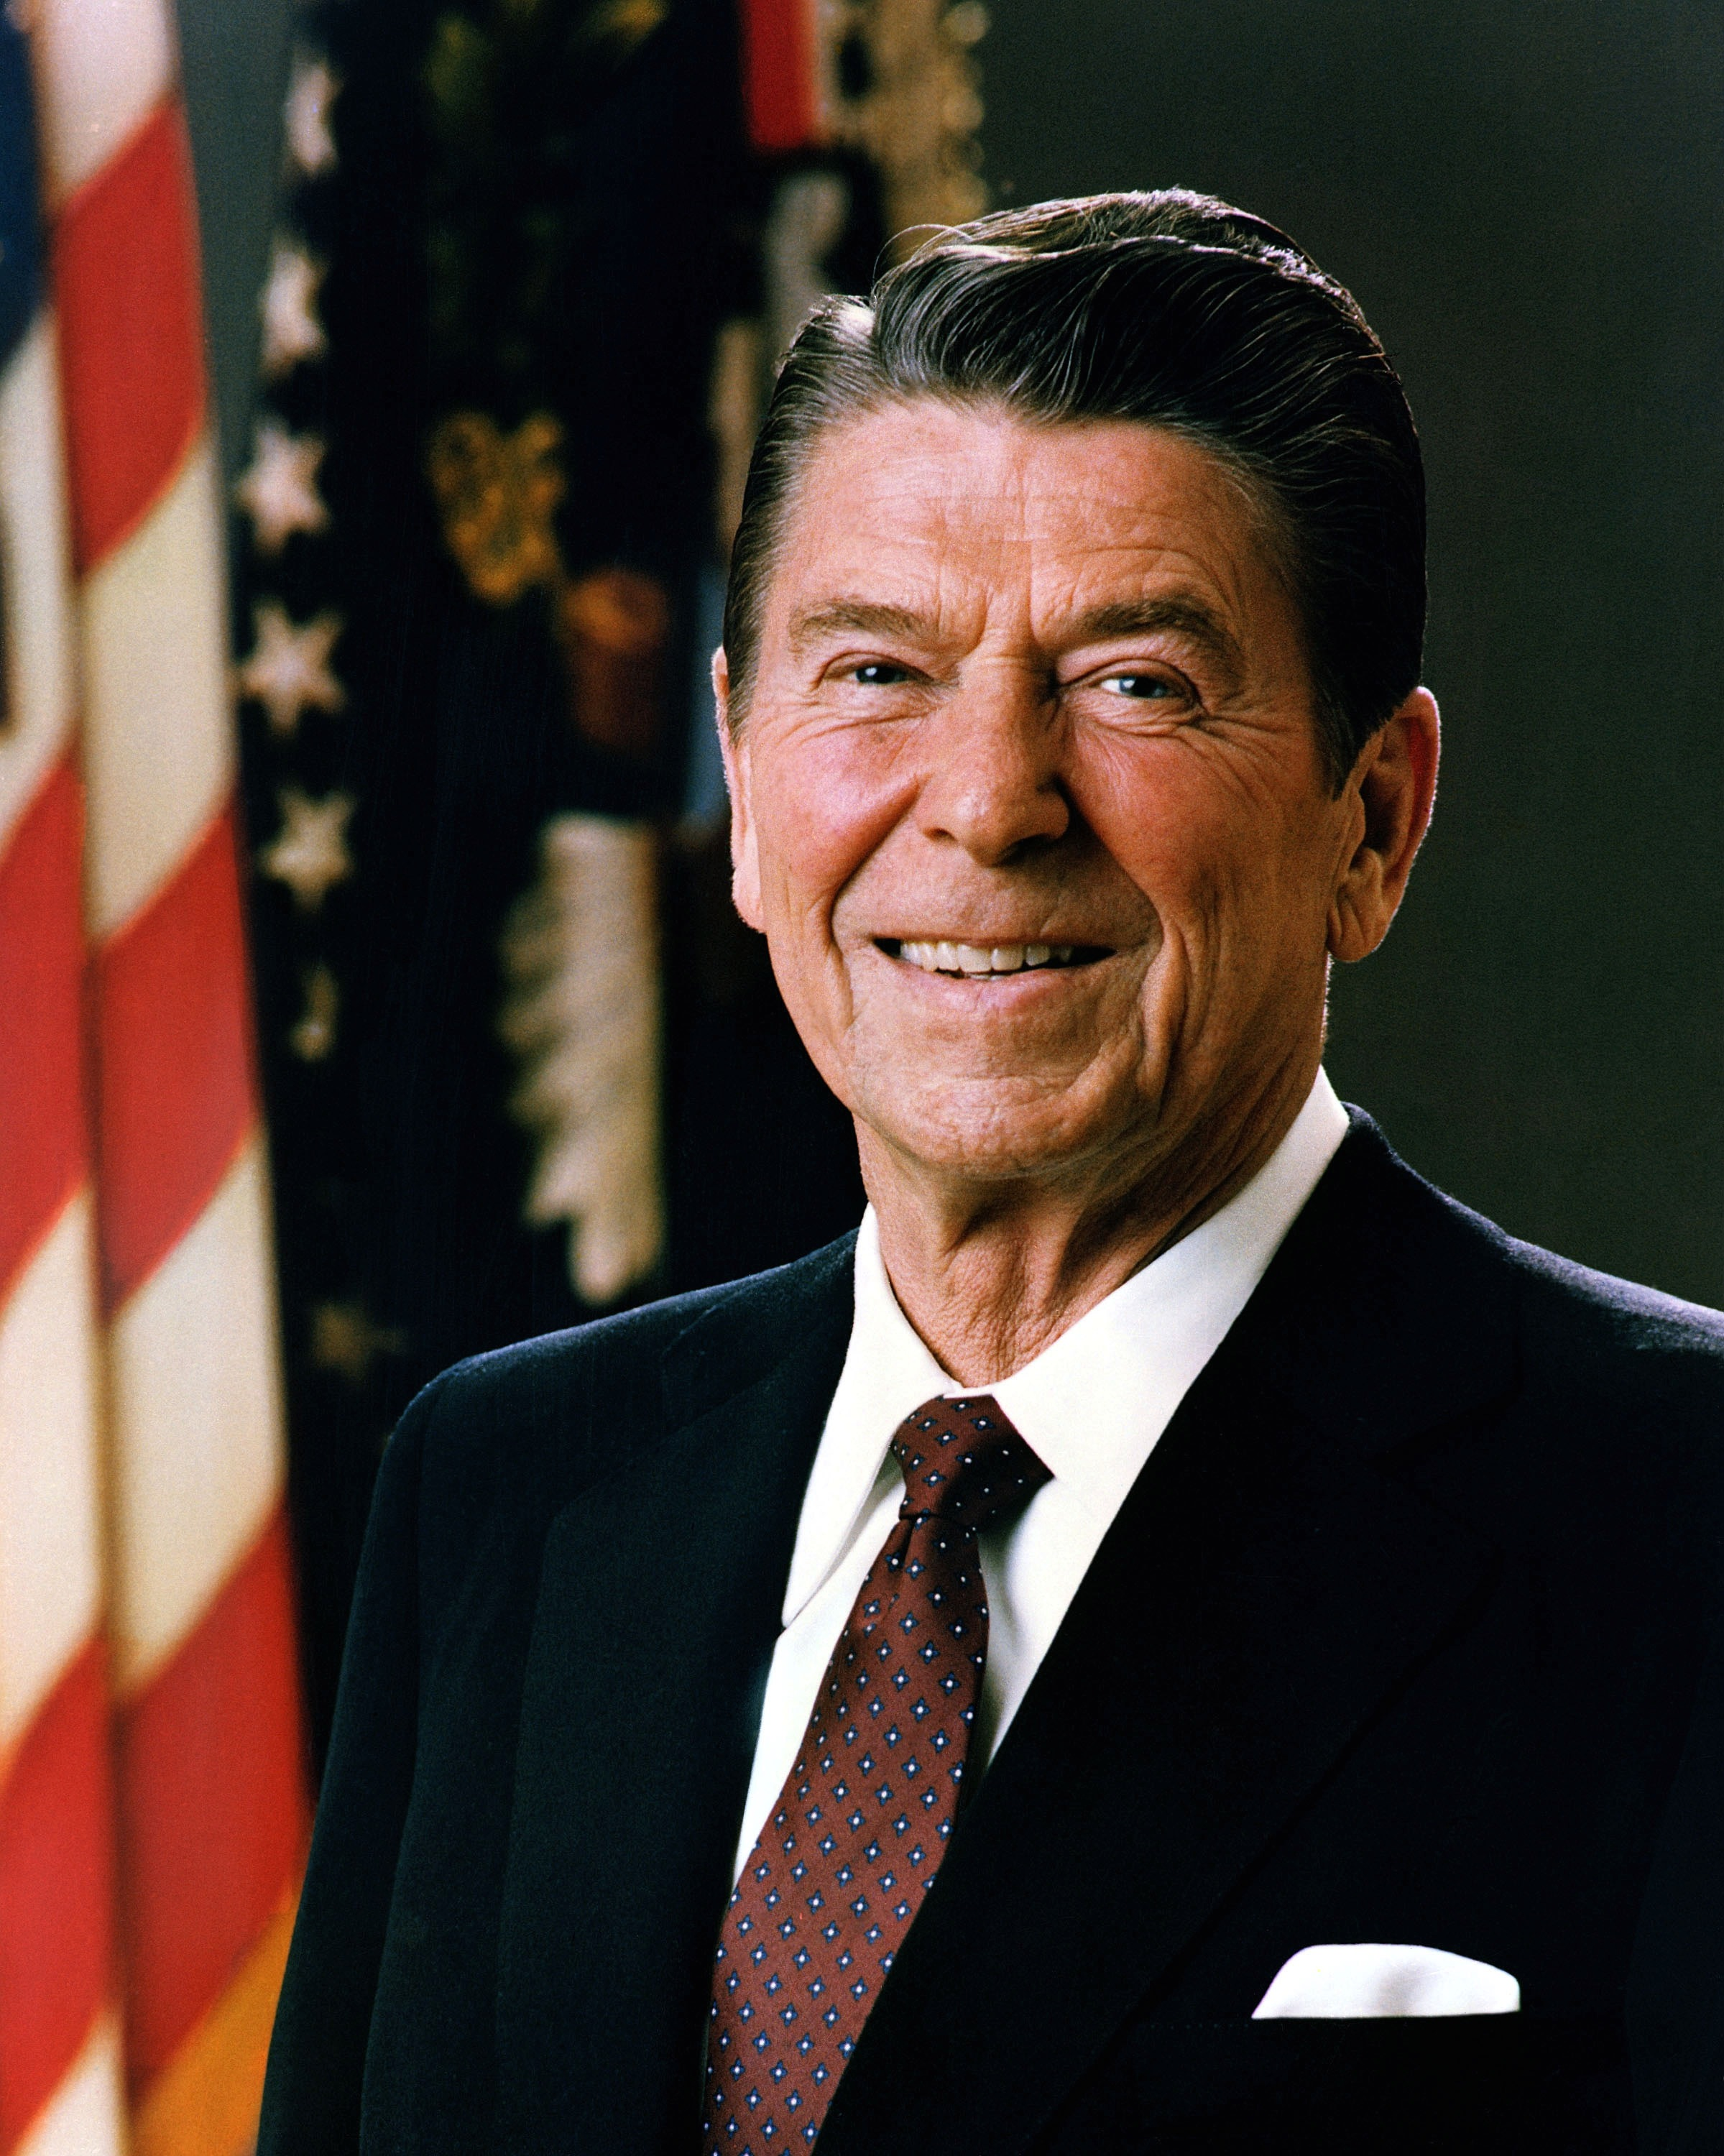 Ronald Reagan: Election and domestic policies (article